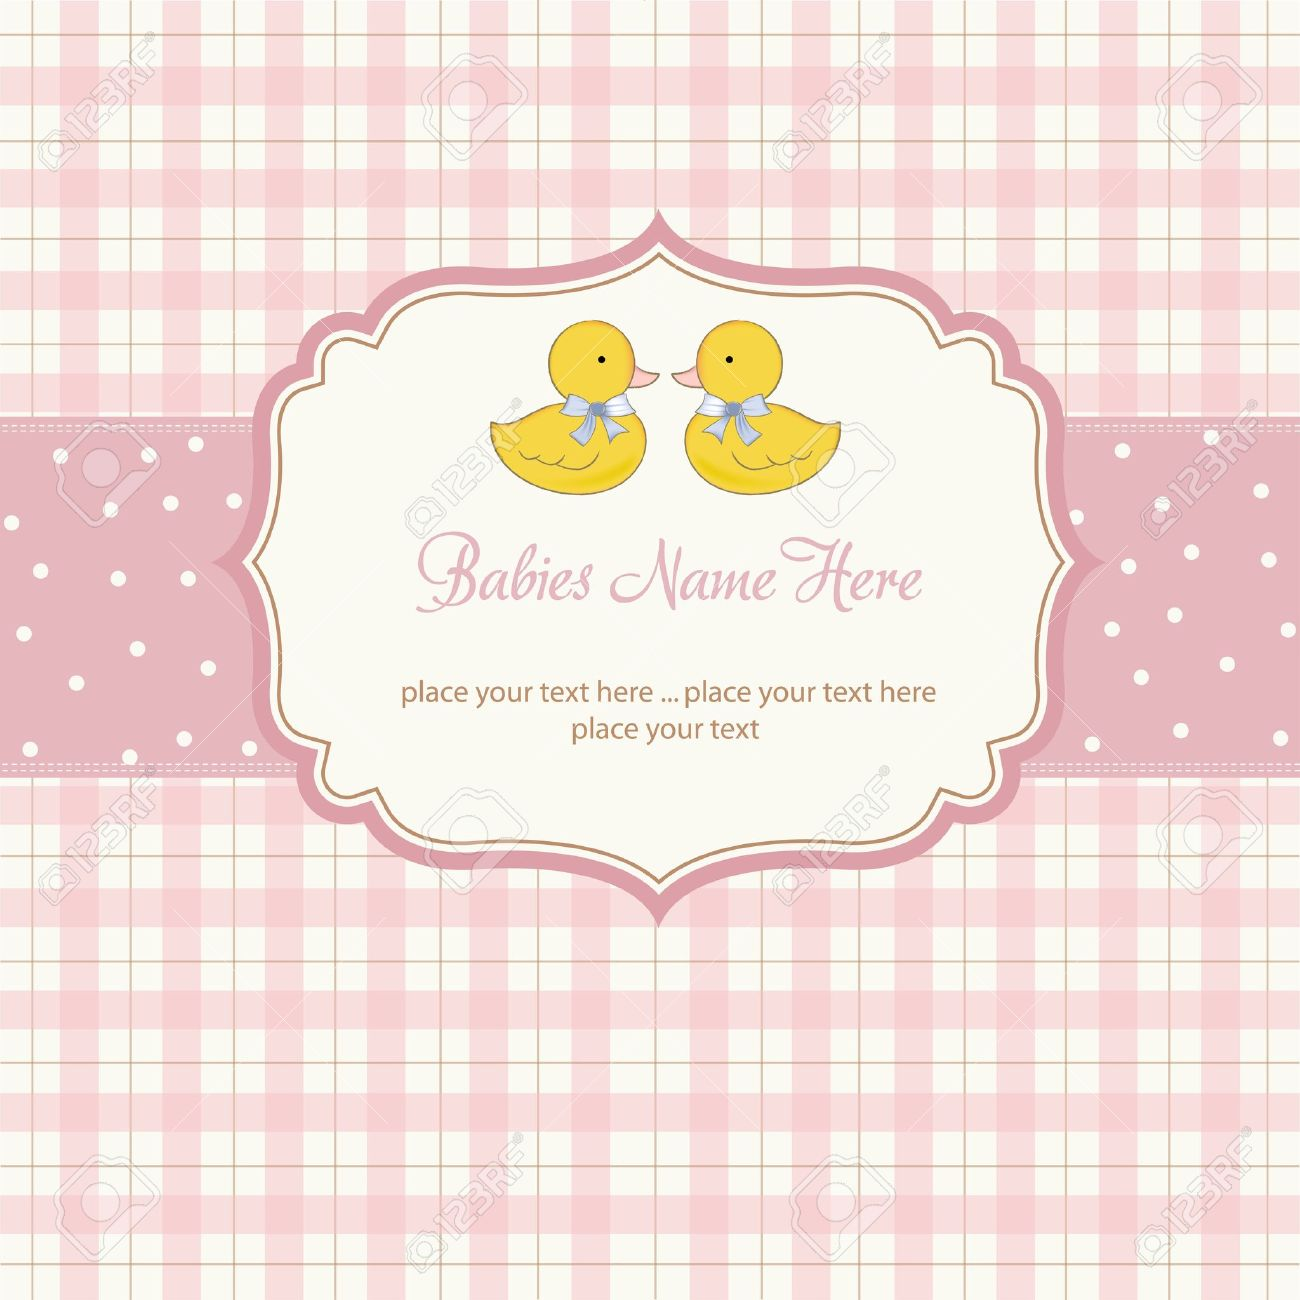 Delicate Babies Twins Shower Card Royalty Free Cliparts, Vectors ...